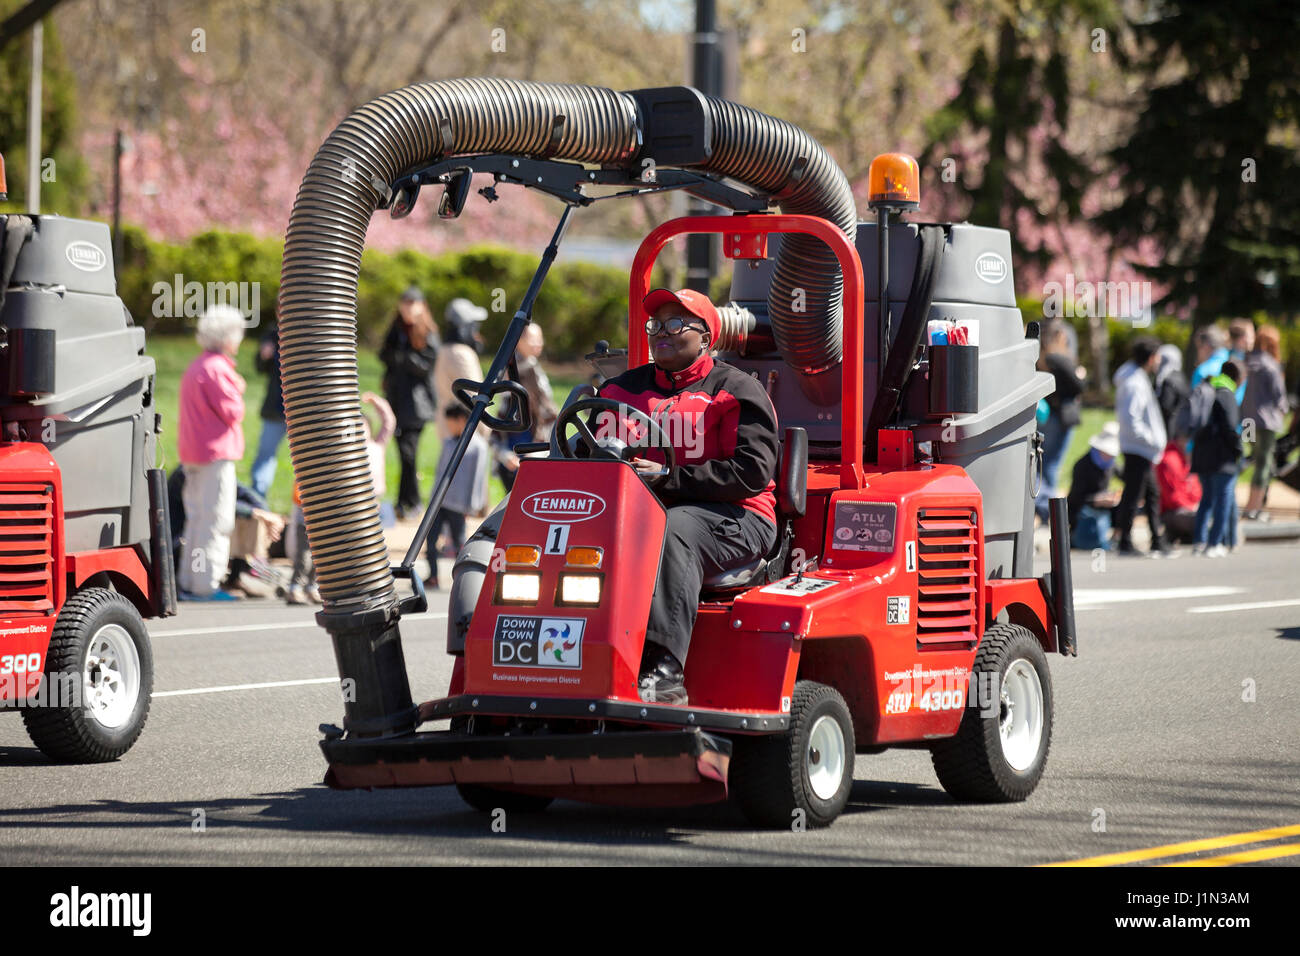 Tennant ATLV (All Terrain Litter Vacuum), street cleaning vehicle, used for urban street maintenance crew - Washington, - Stock Image